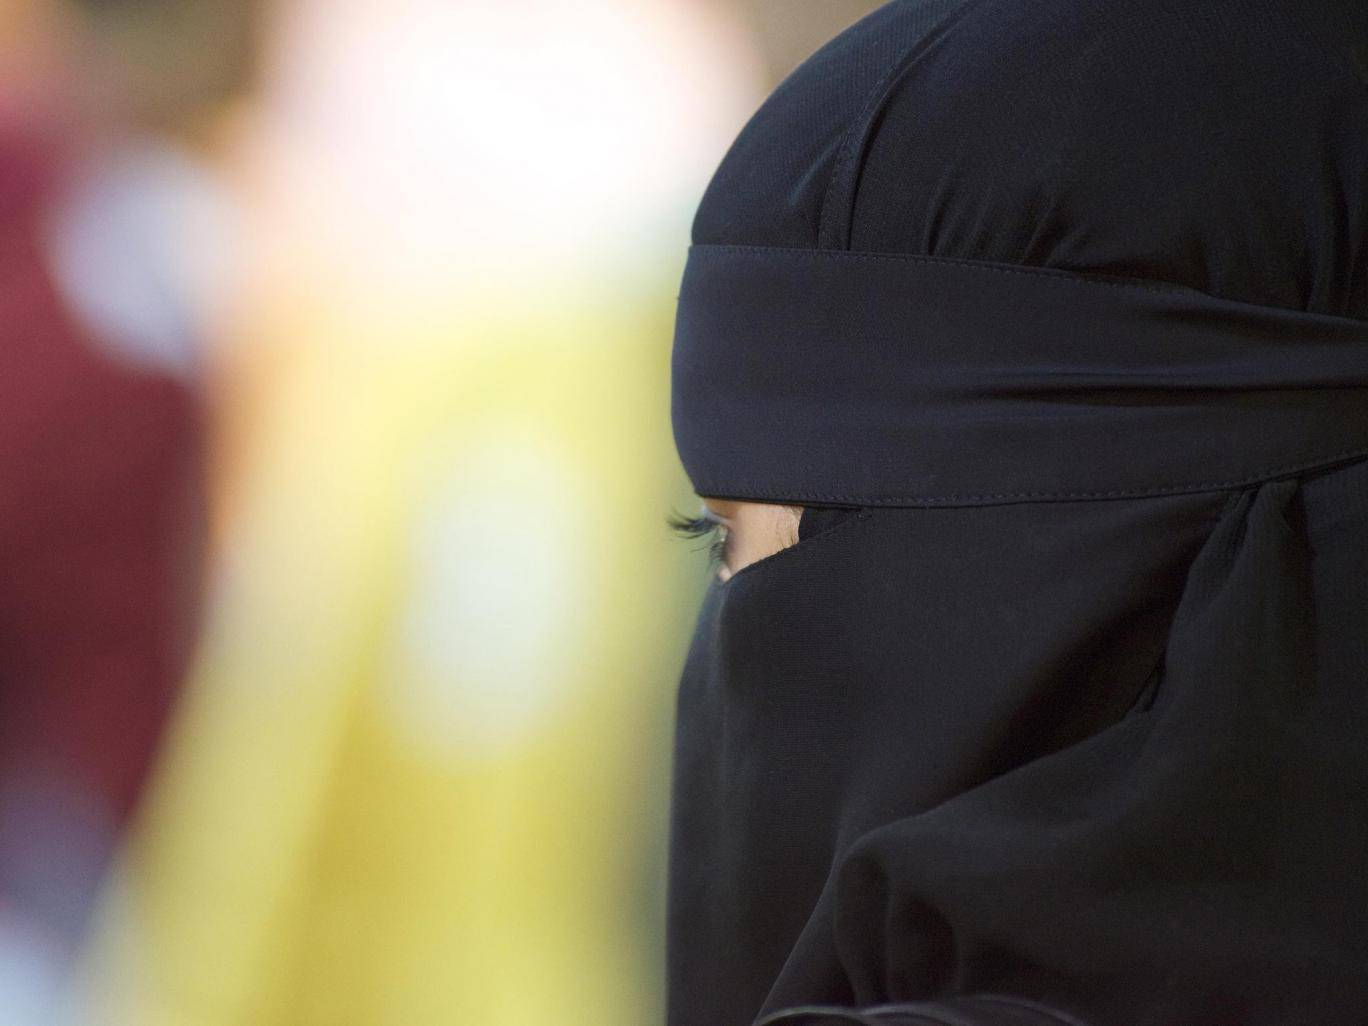 After the niqab: What life is like for French women who remove the veil